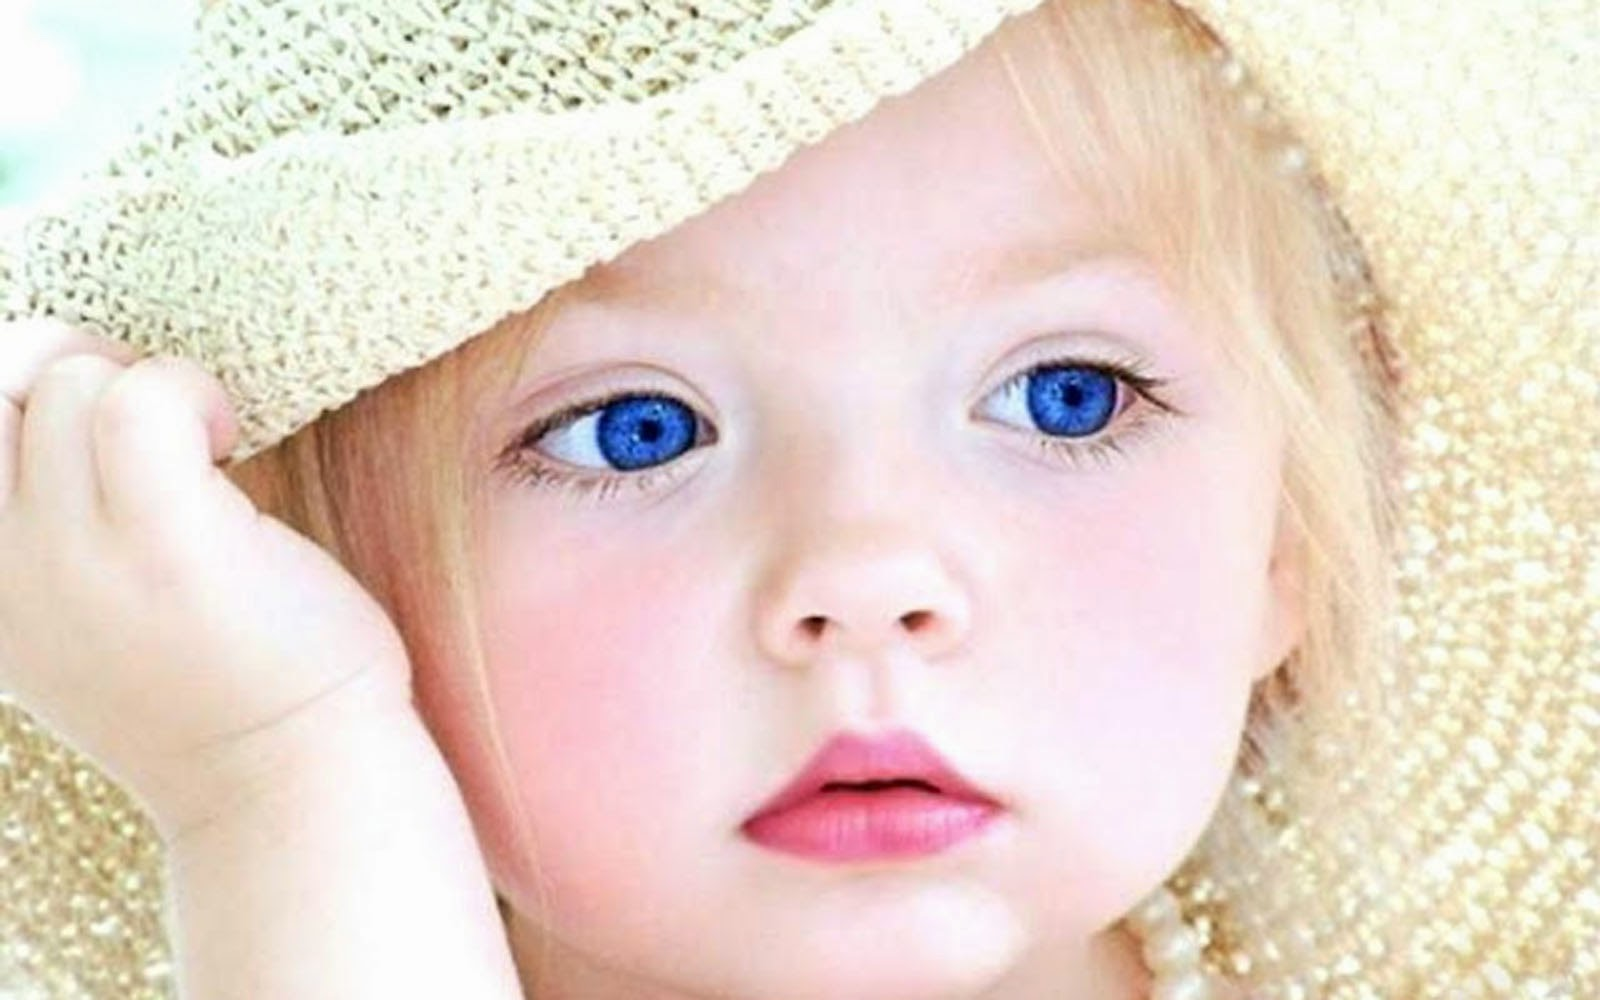 Cute baby wallpapers hd free beautiful desktop wallpapers 2014 cute baby wallpapers hd free altavistaventures Images